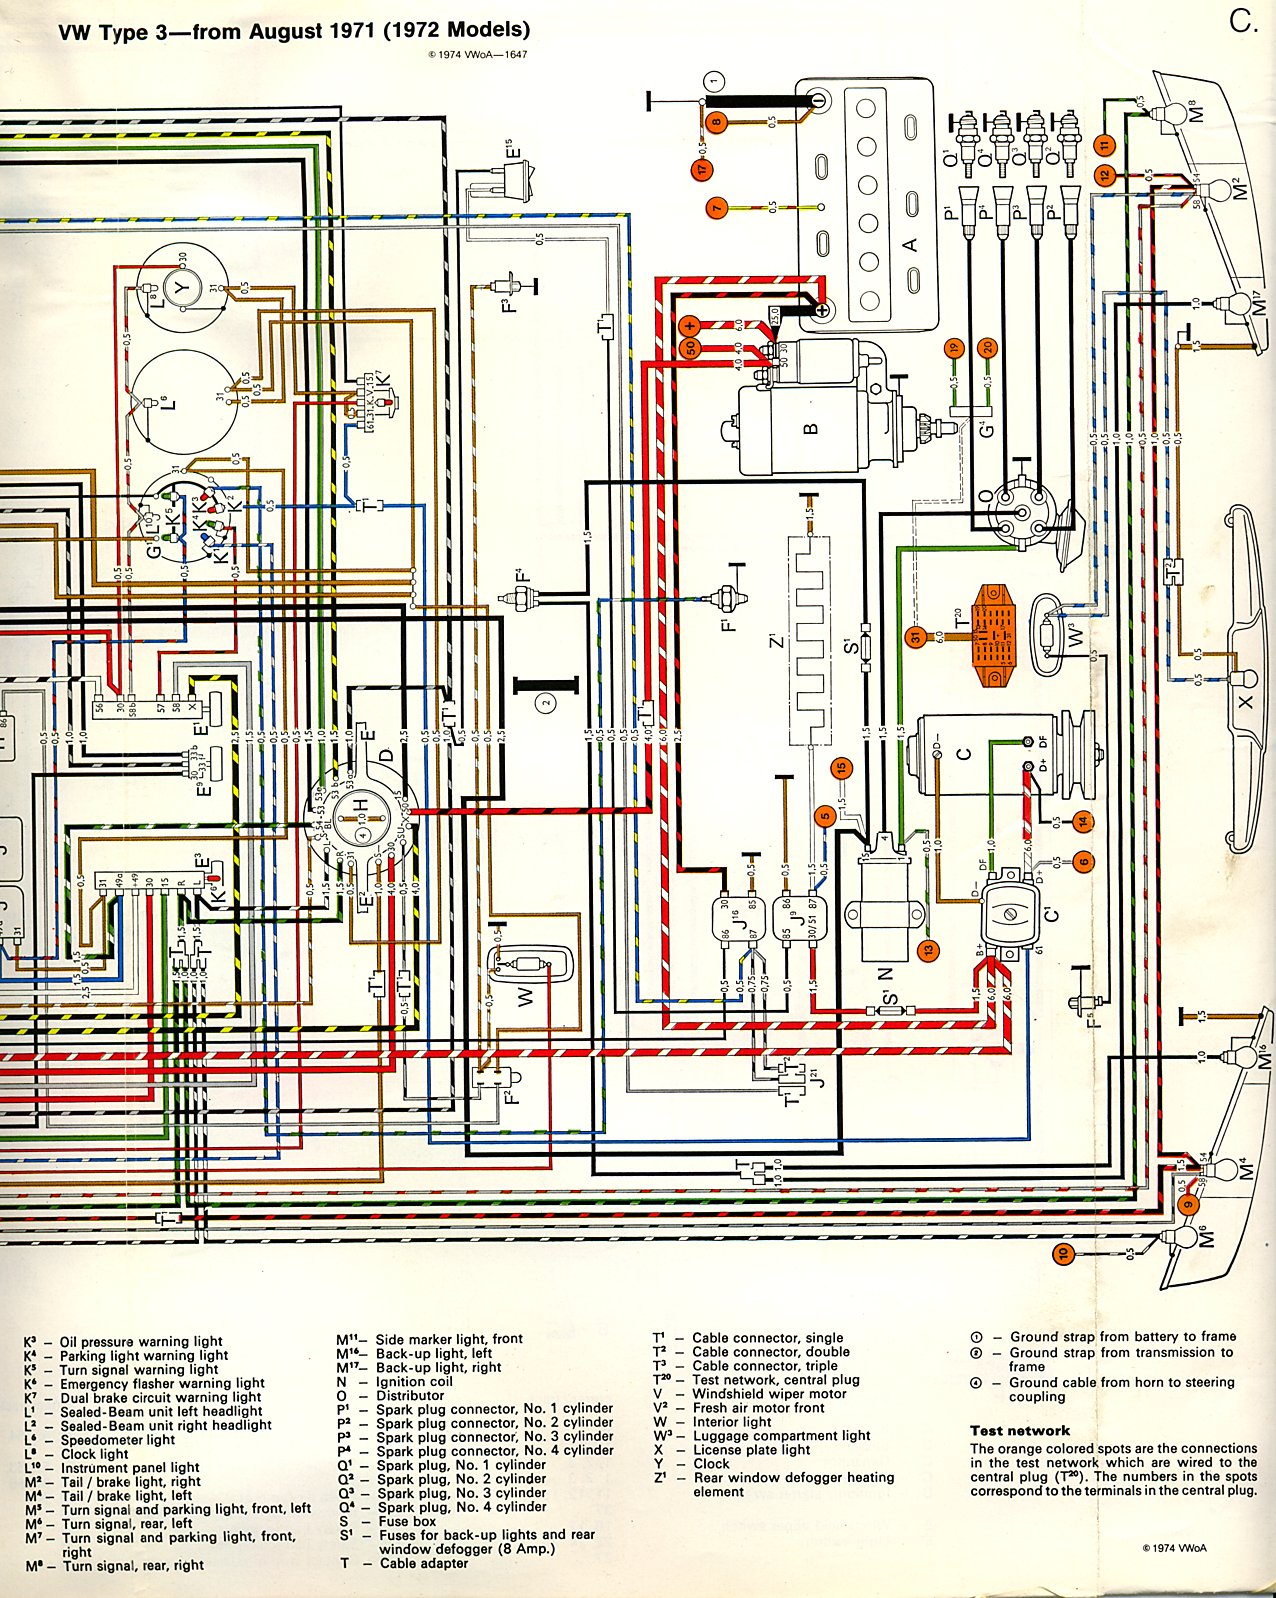 Wiper Switch Wiring Diagram 1968 Simple Guide About 1970 Vw Karmann Ghia Thesamba Com Type 3 Diagrams